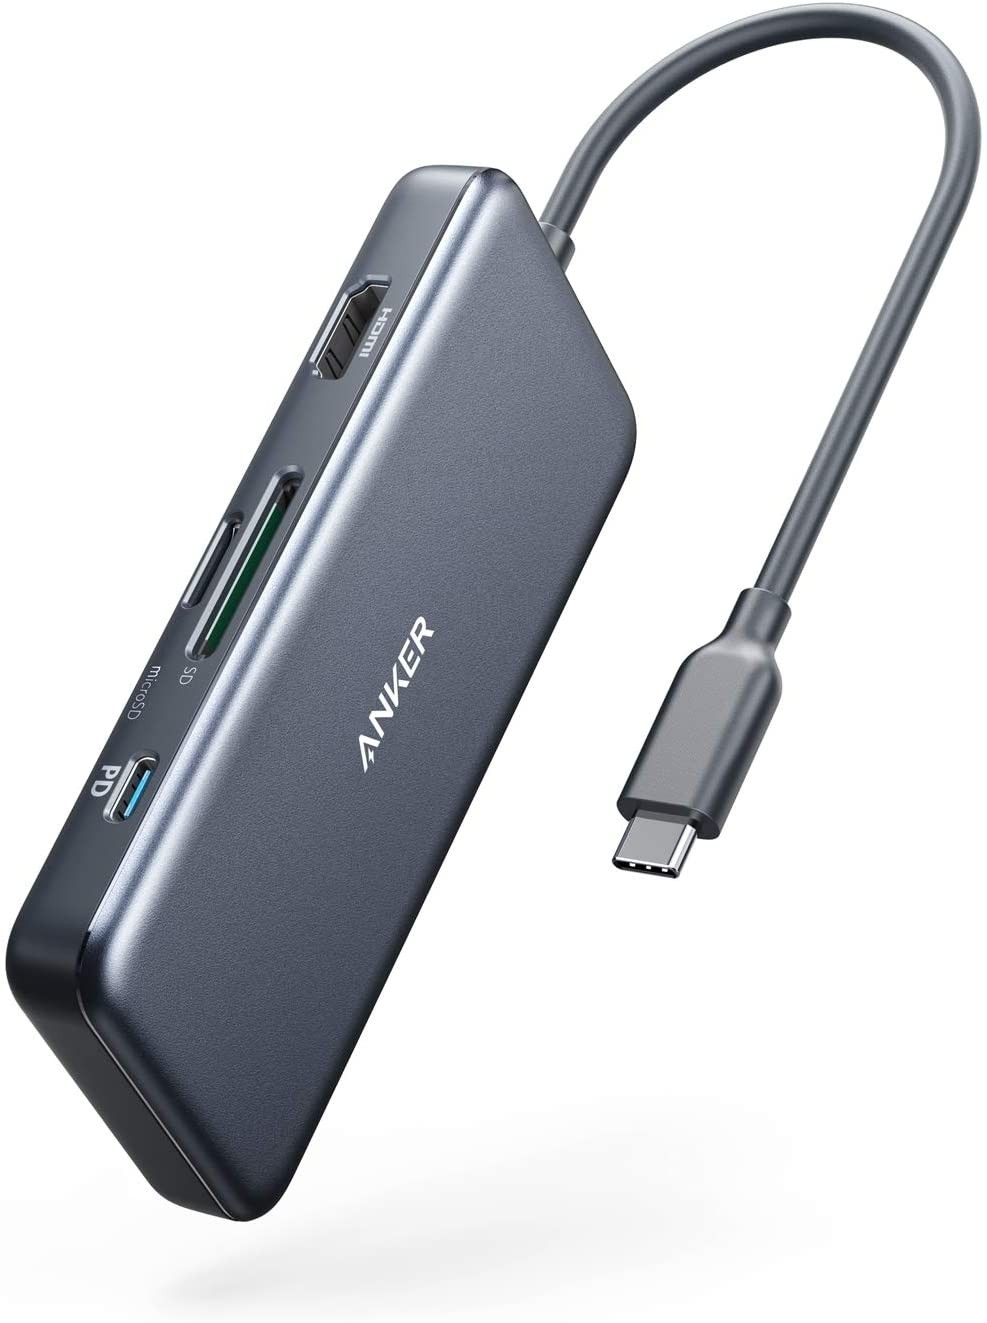 Anker PowerExpand+ 7-in-1 USB C Hub Adapter, with 4K HDMI, 100W Power Delivery, USB-C and 2 USB-A 5Gbps Data Ports, microSD and SD Card Reader, A8346